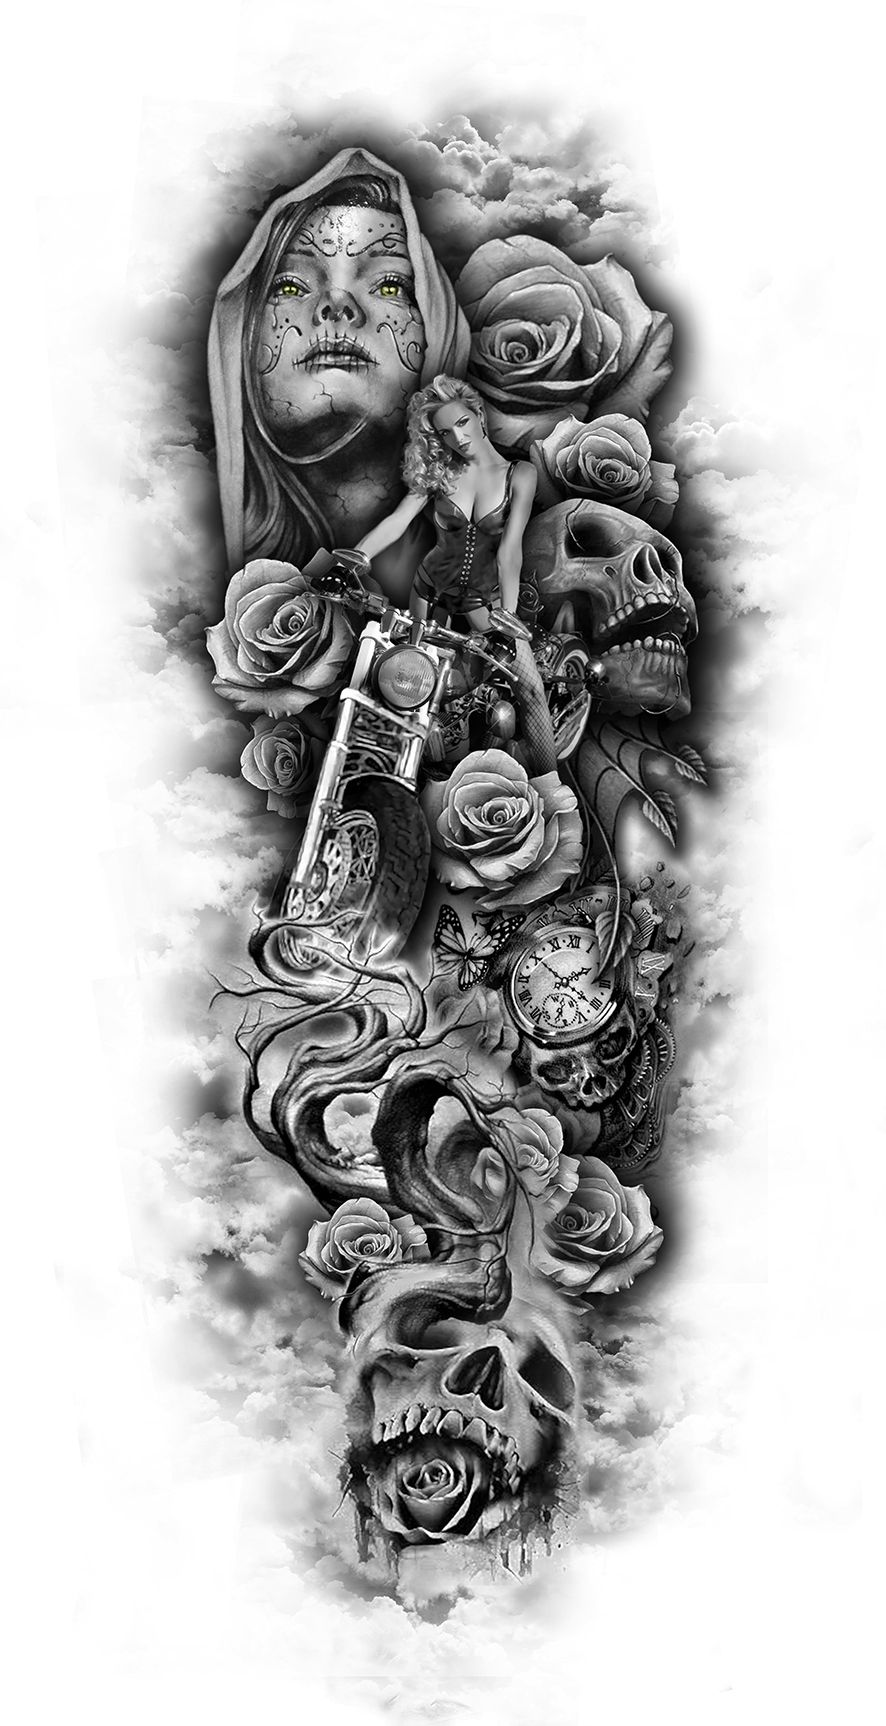 www.customtattoodesign.net wp-content uploads 2014 04 full-sleeve-design...jpg